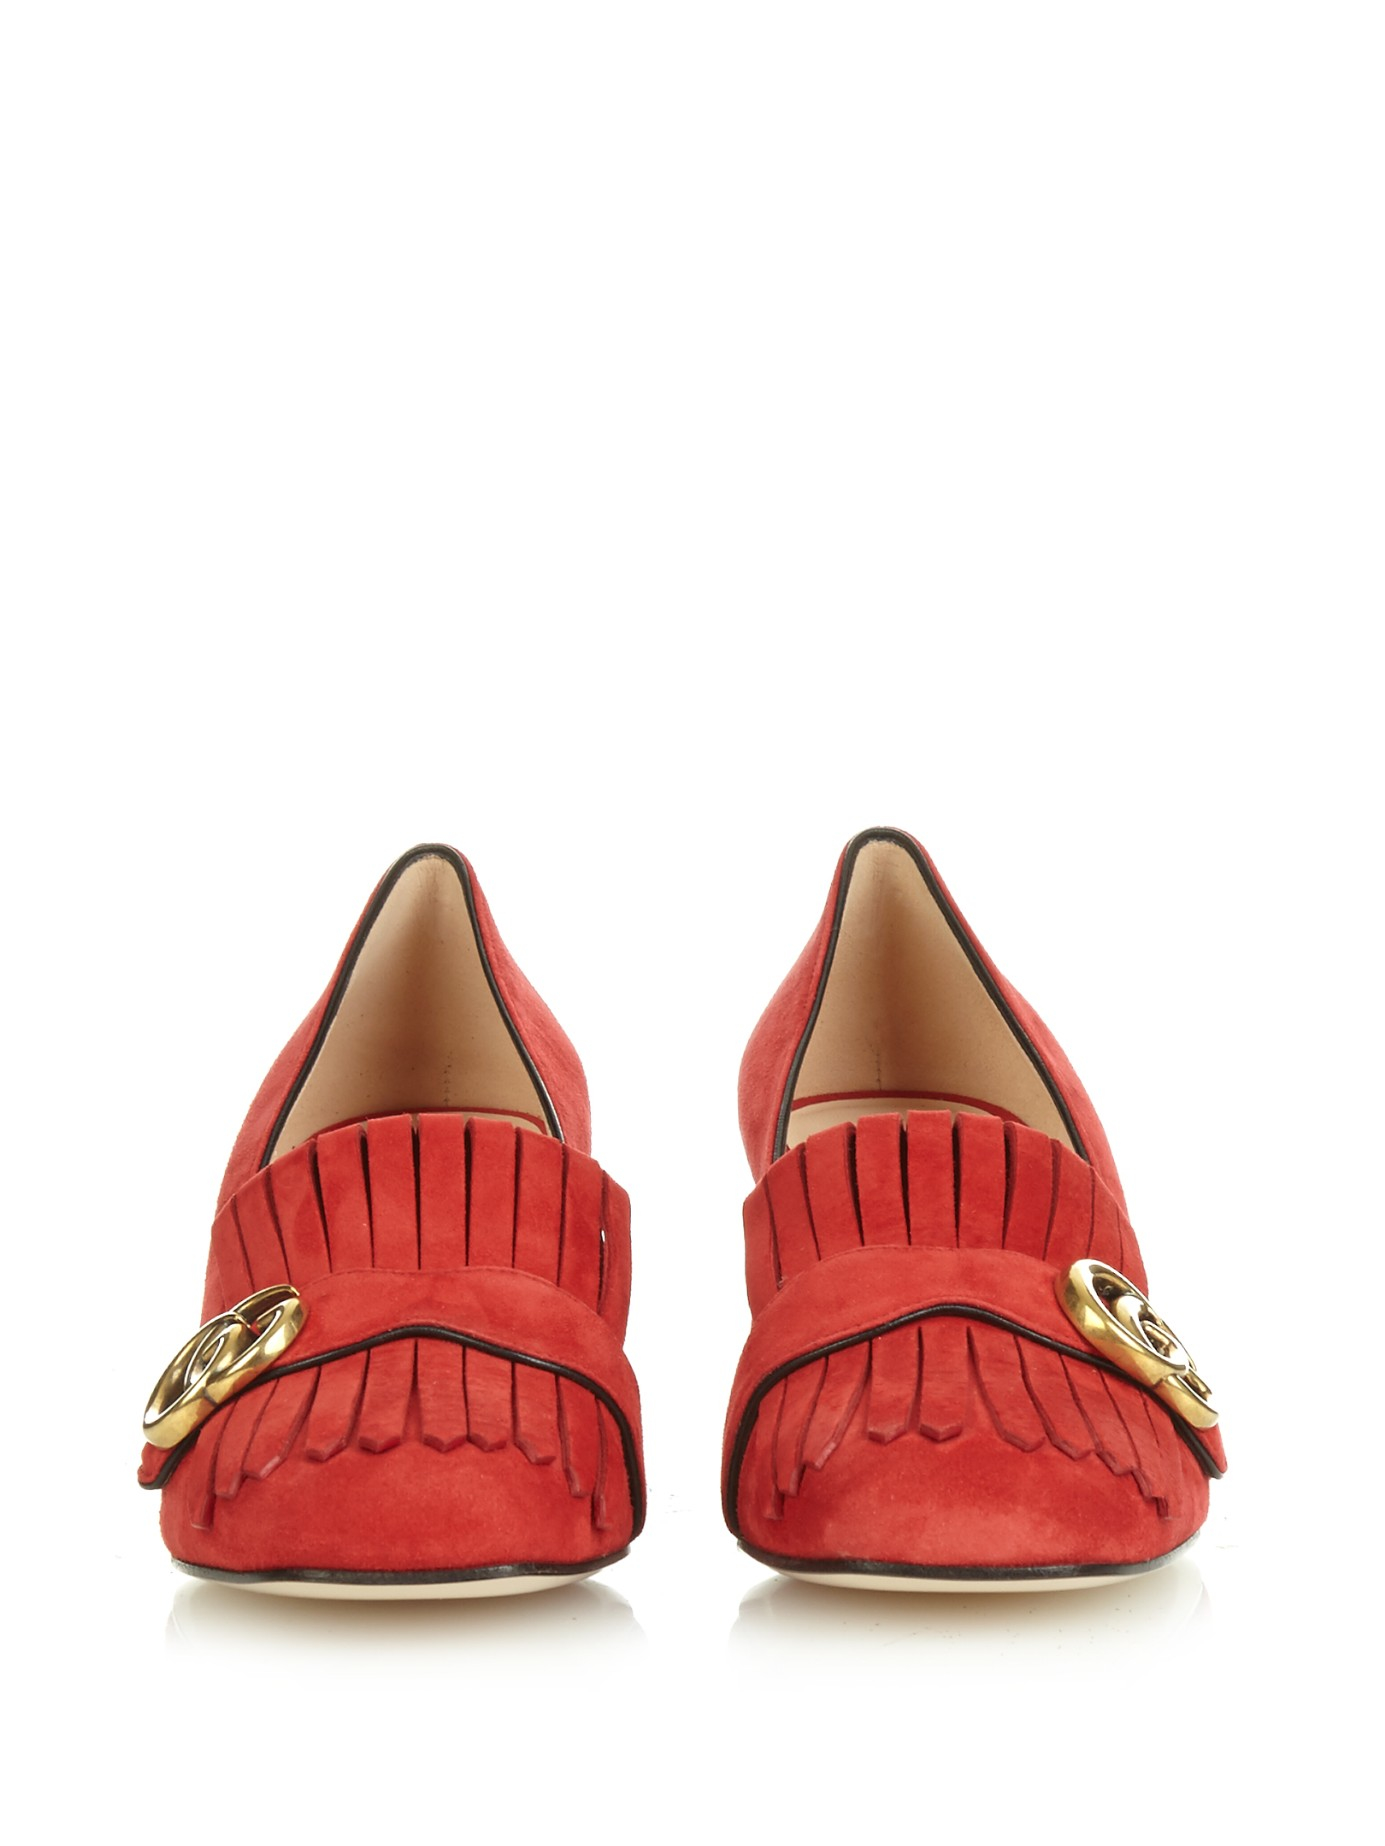 9ec4b5b6343cd Lyst - Gucci Marmont Fringed Suede Pumps in Red